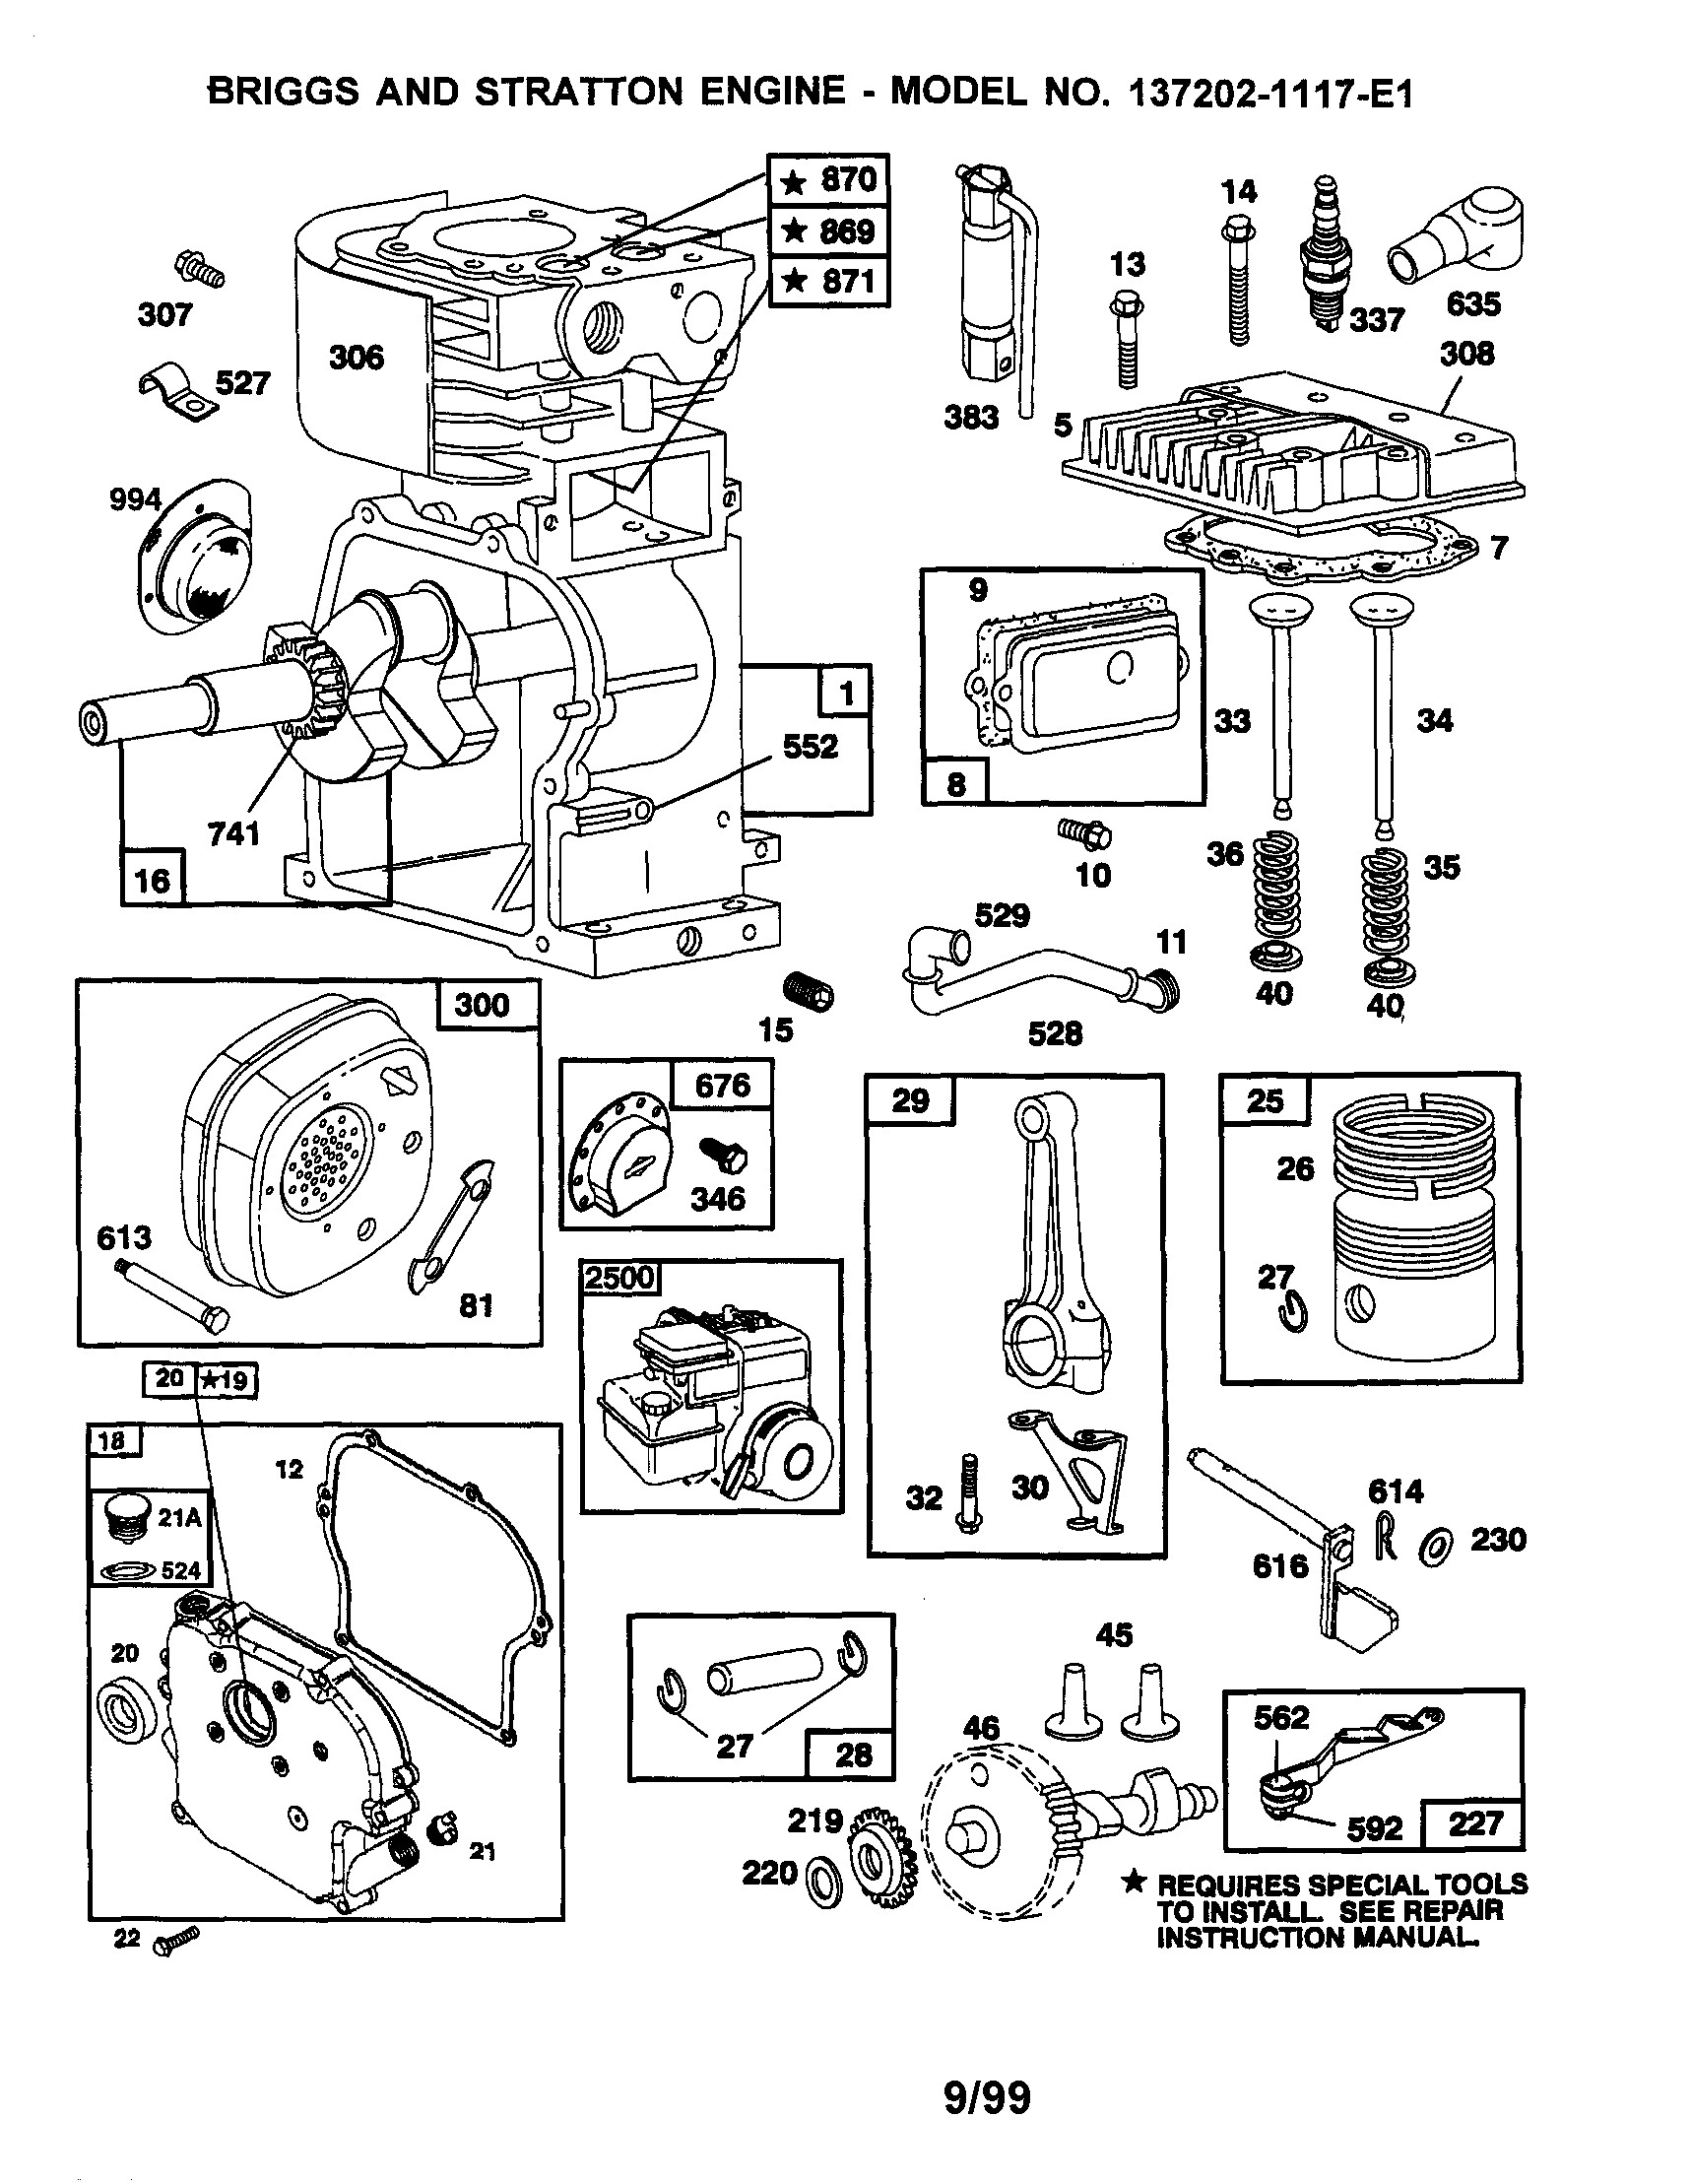 hight resolution of 20 hp briggs and stratton parts diagram wiring wiring diagrams bib 26 hp briggs and stratton